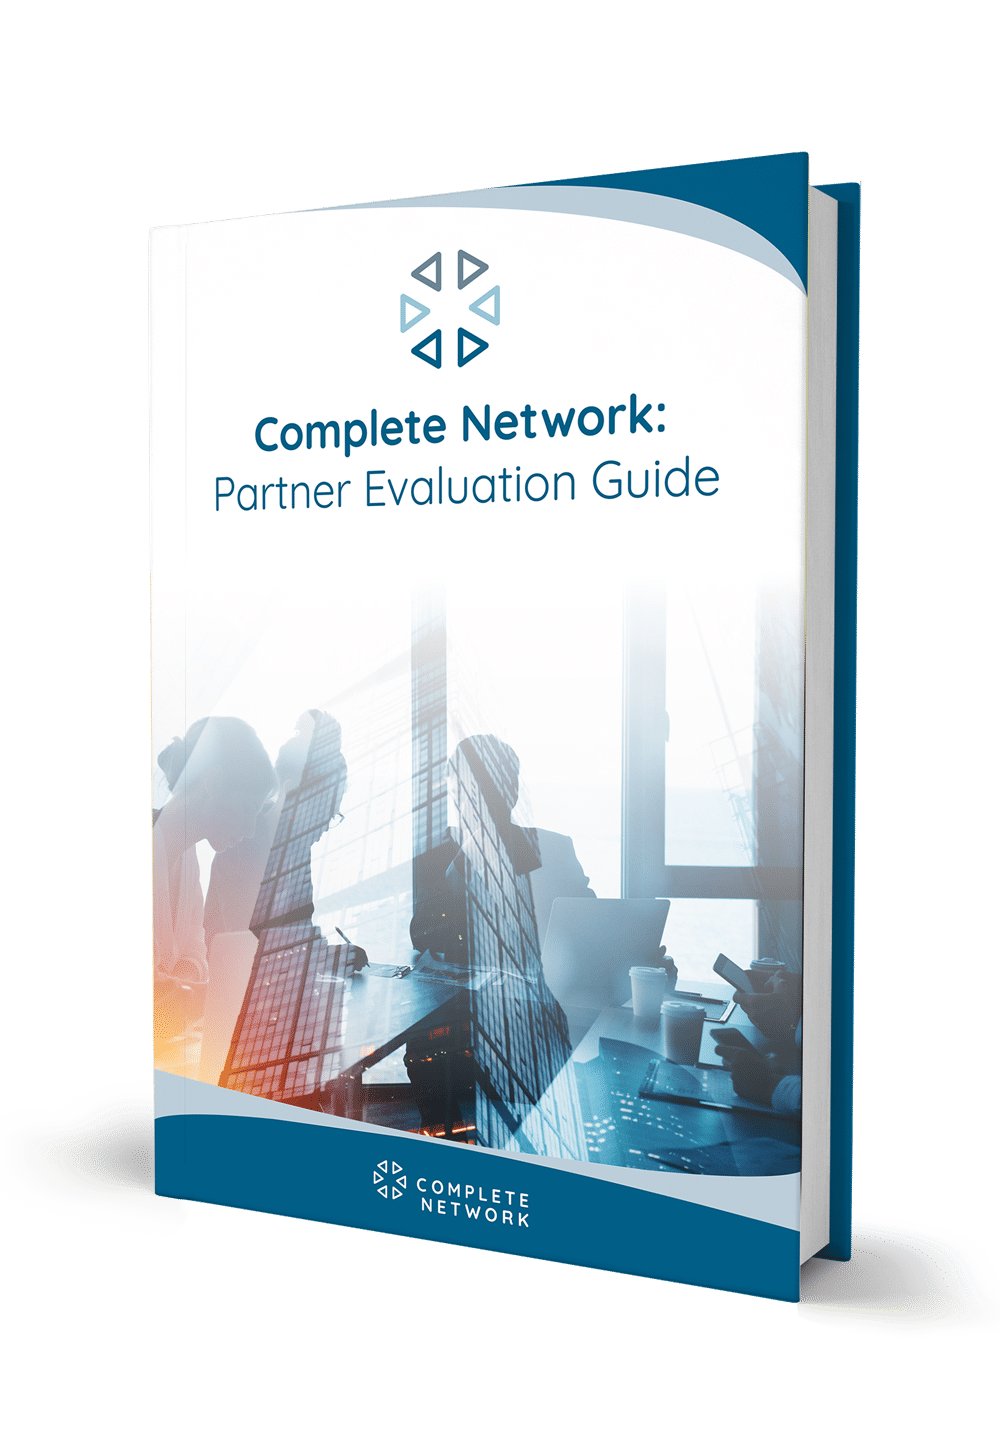 Complete Network Partner Evaluation Guide